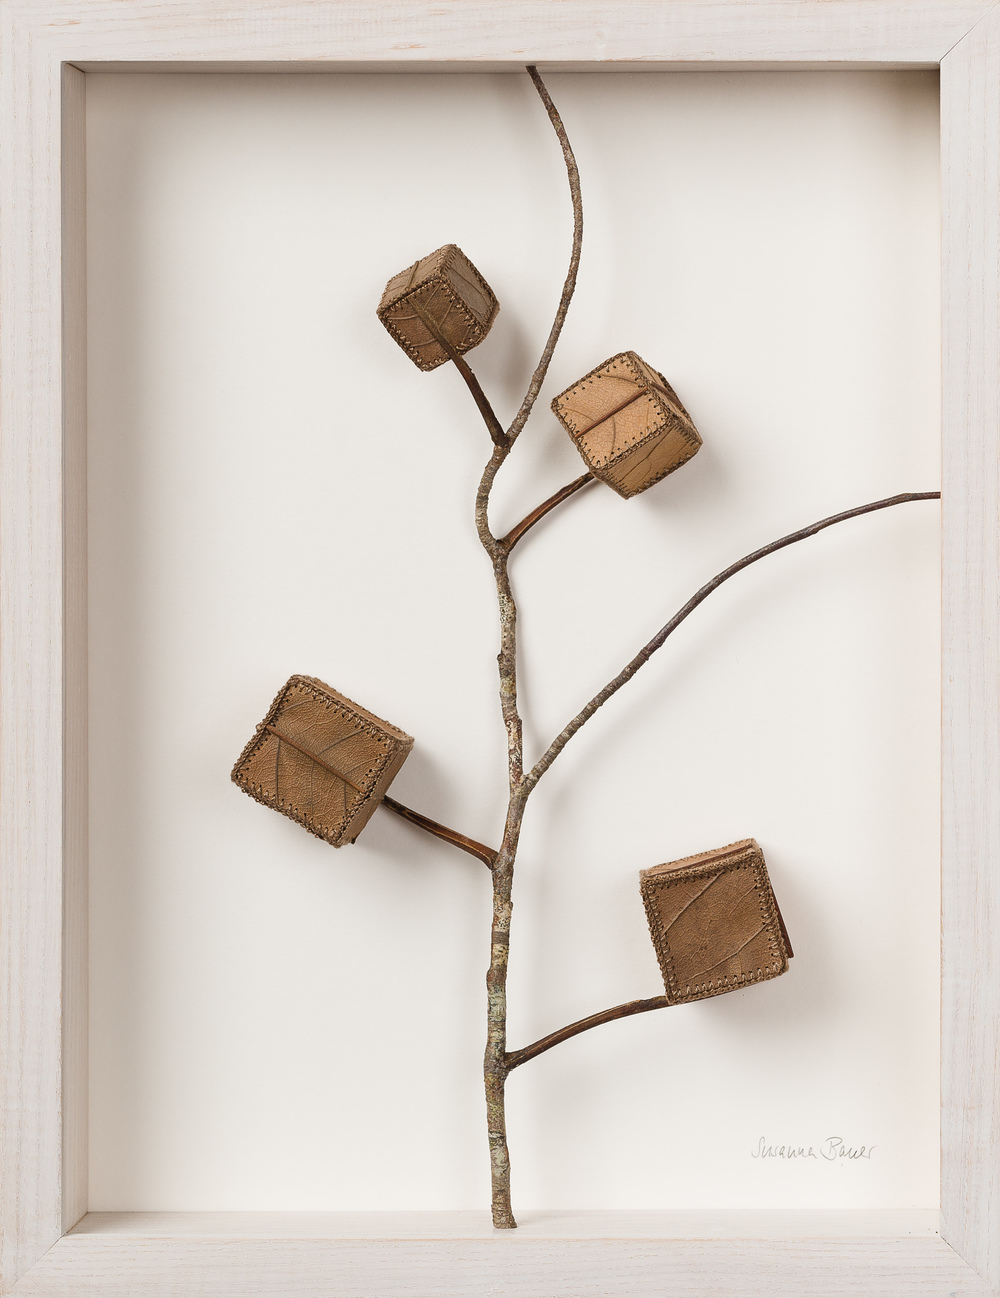 Cube Tree No.4 34.2 H x 26.5 x cm magnolia leaves, cotton yarn, wood £ 900